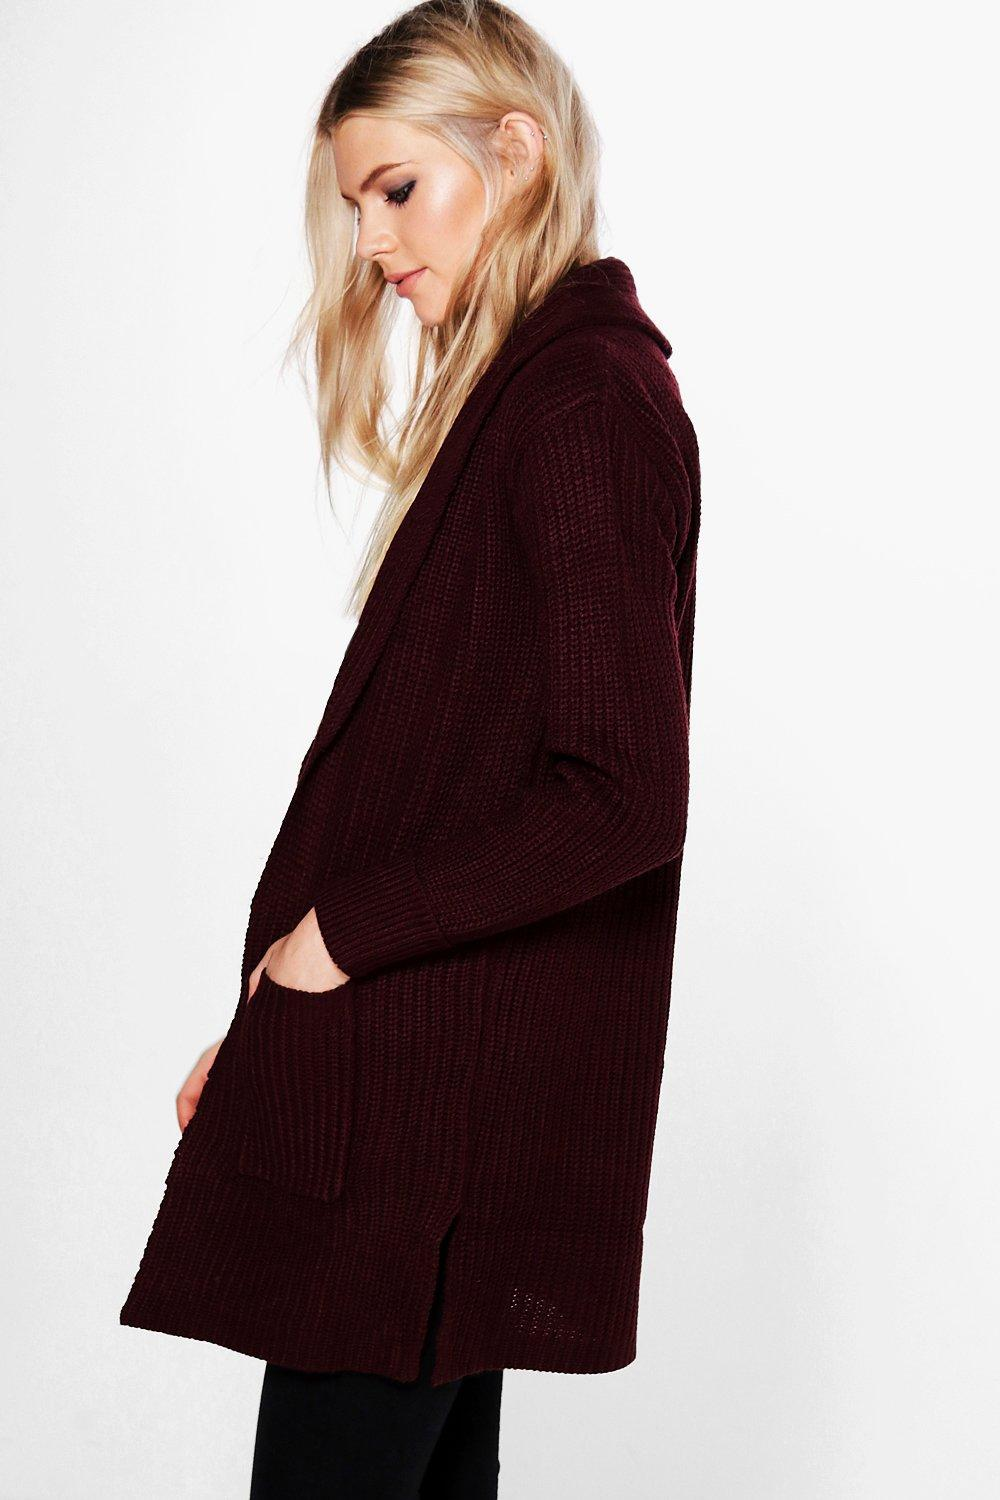 More Details Vince Cropped Shawl-Collar Cardigan Details Vince ribbed-knit cardigan with pockets. Approx. length: 22